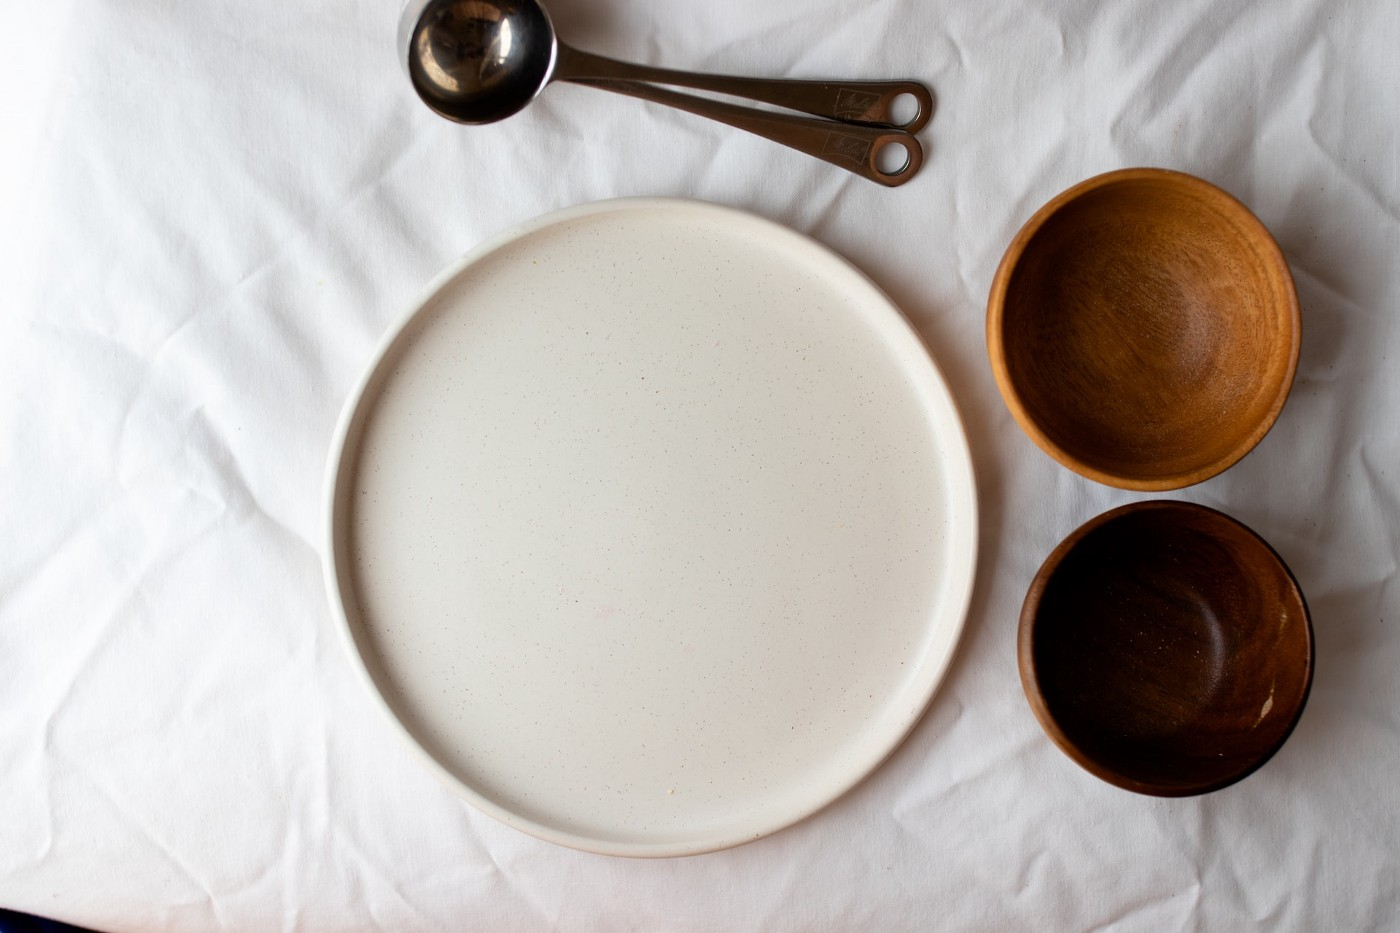 A silver measuring spoon, white plate, one tan bowl and one brown wooden bowl on a white table cloth